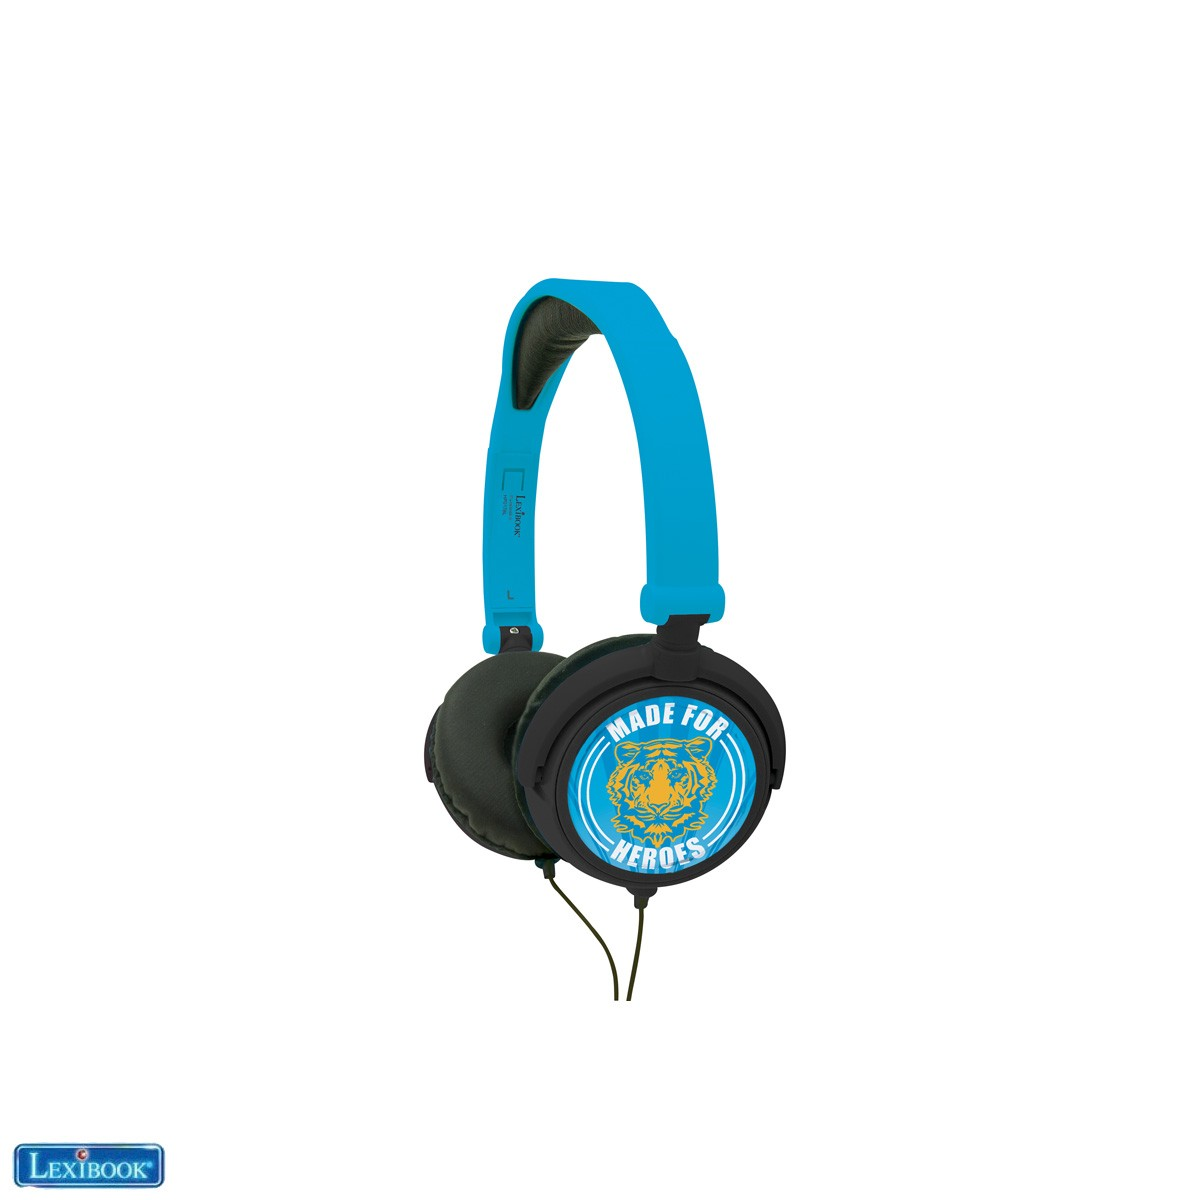 Made for Heroes Headphone